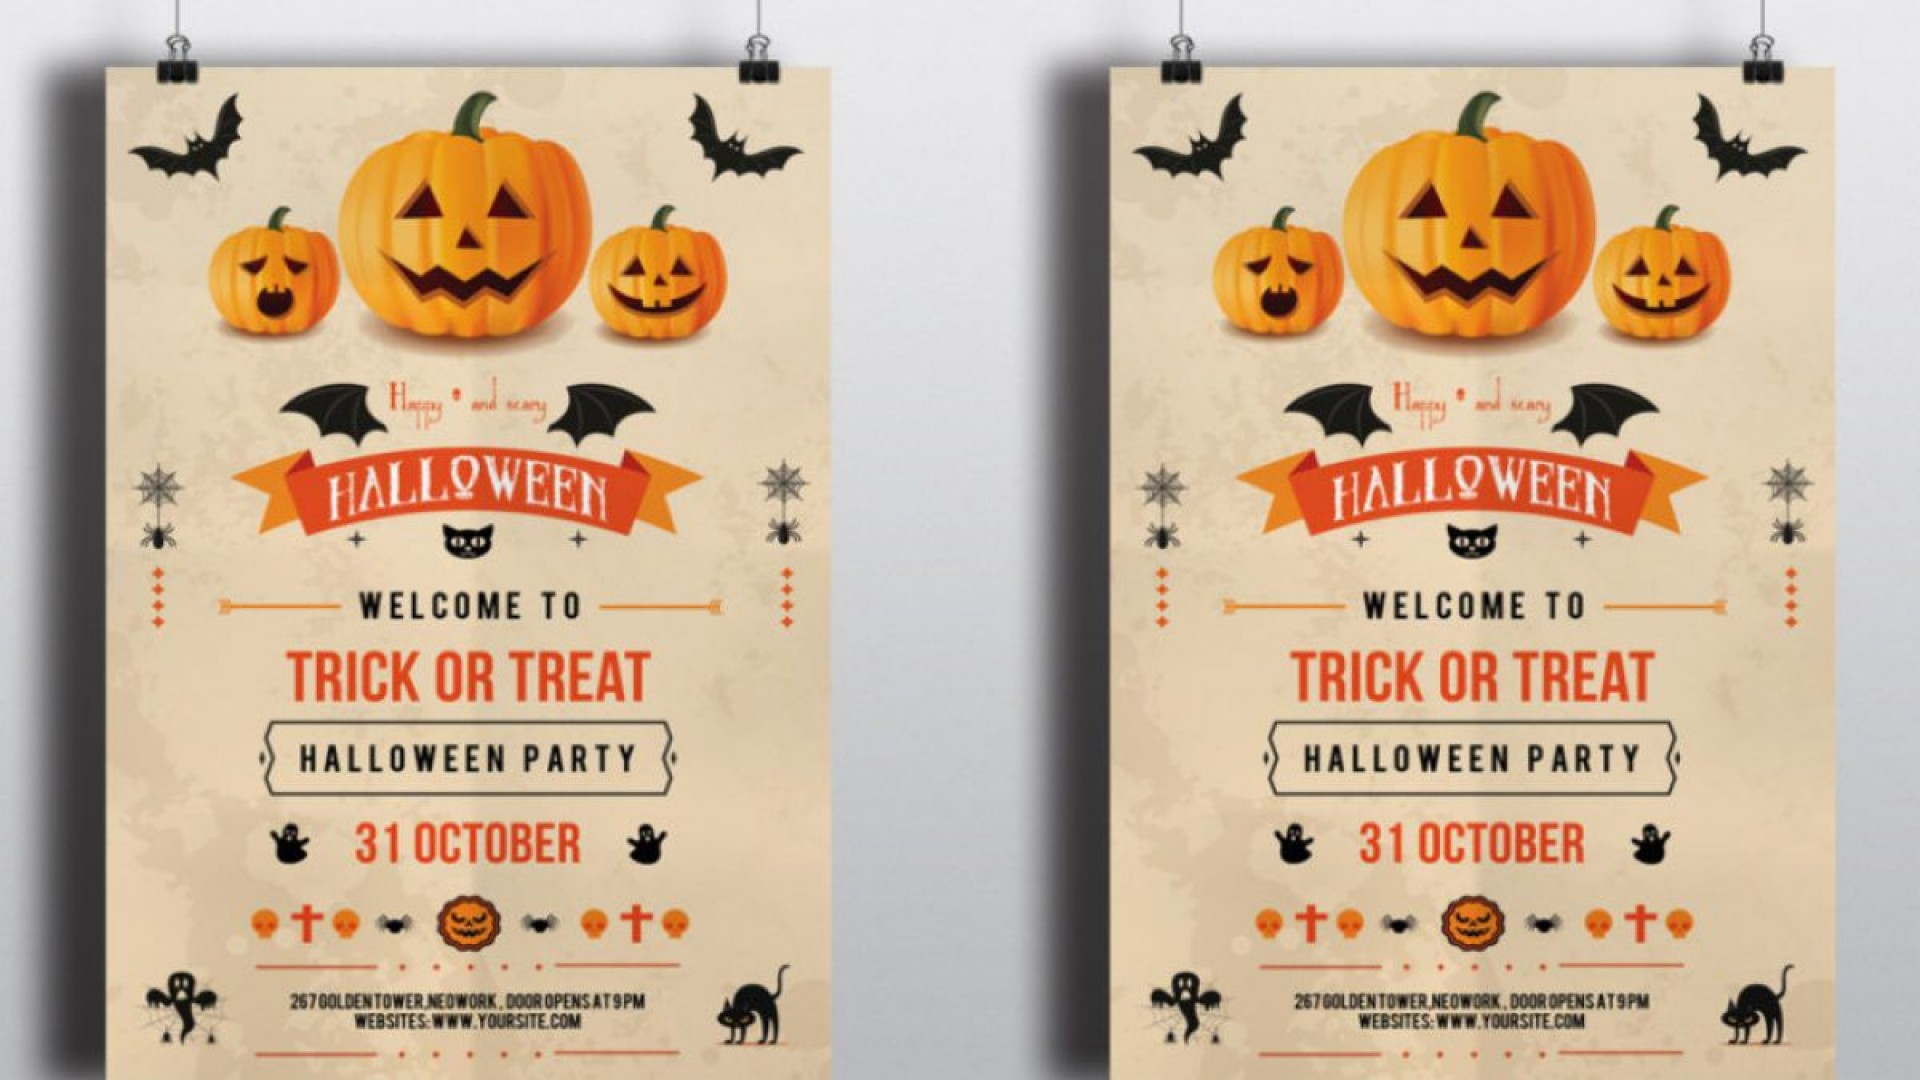 001 Wonderful Free Halloween Party Flyer Template Example  Templates1920